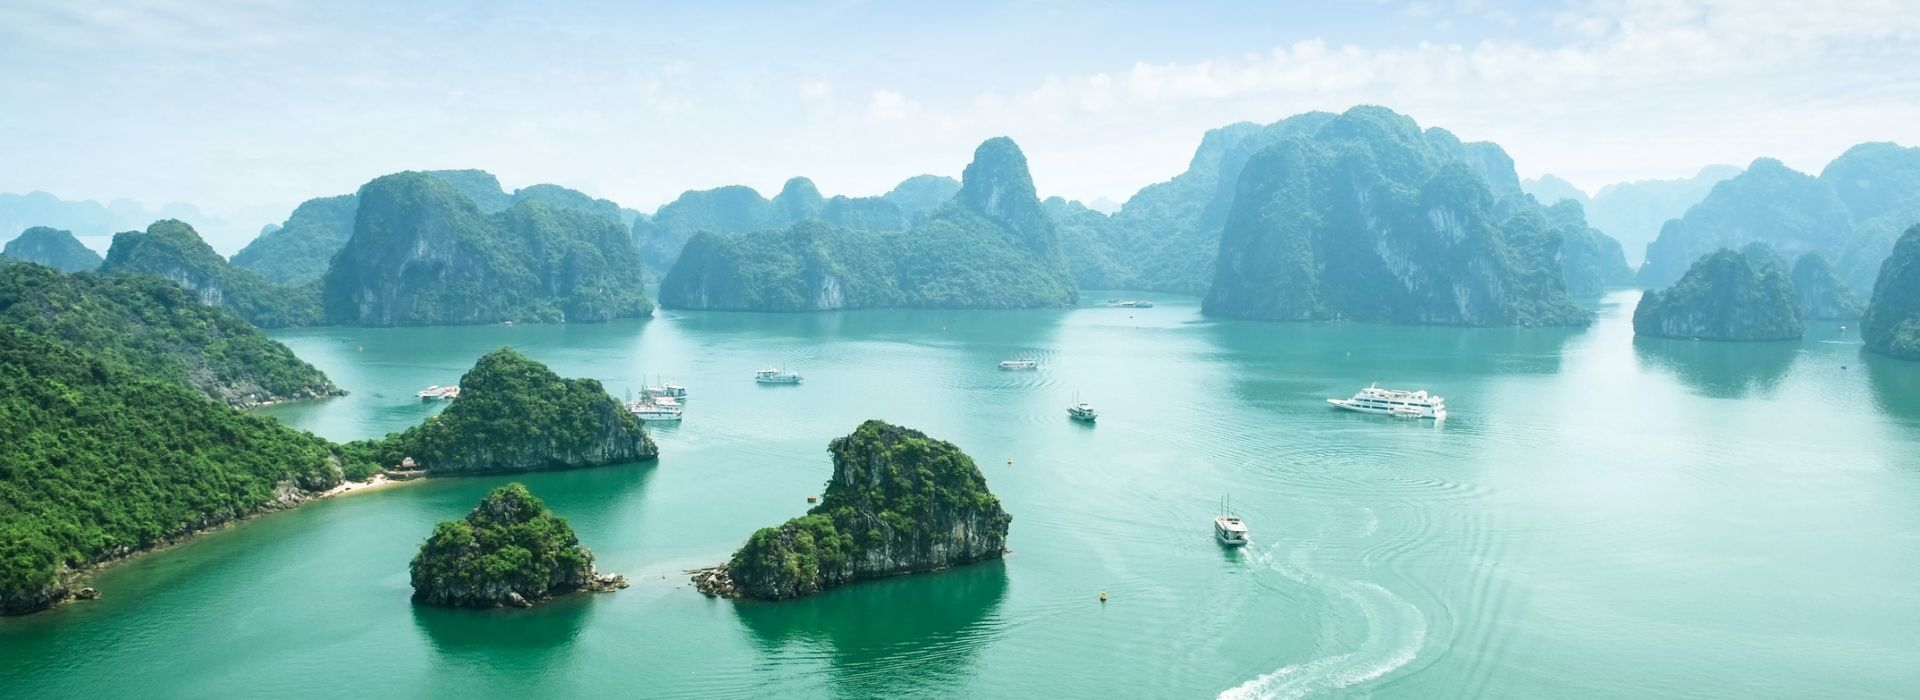 Local boat rides Tours in Halong Bay